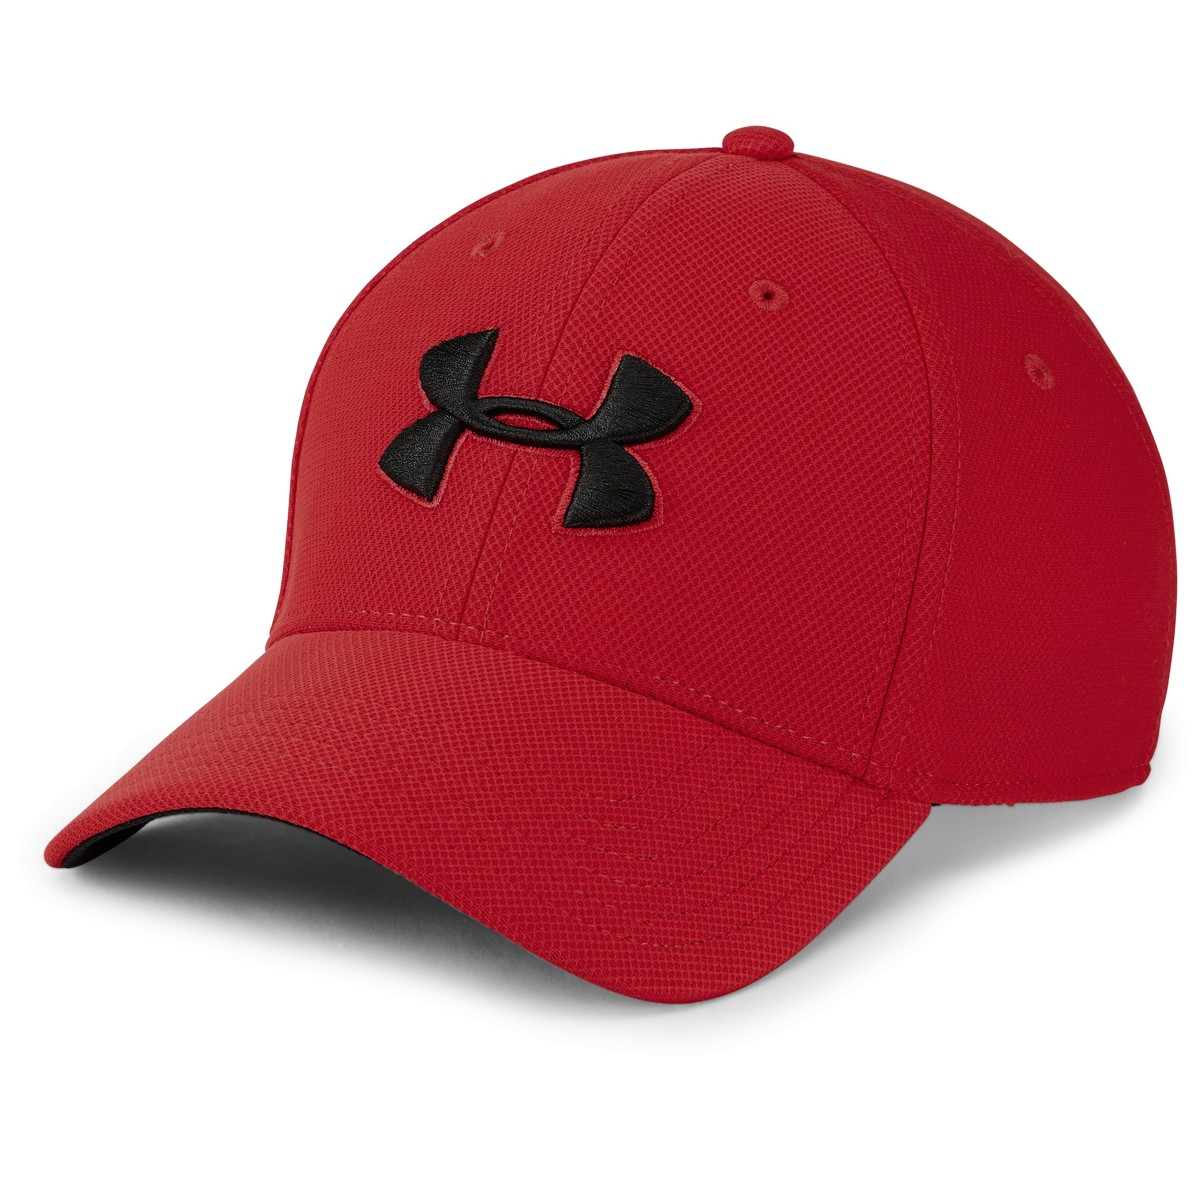 Under Armour Blitzing II Casquette Homme